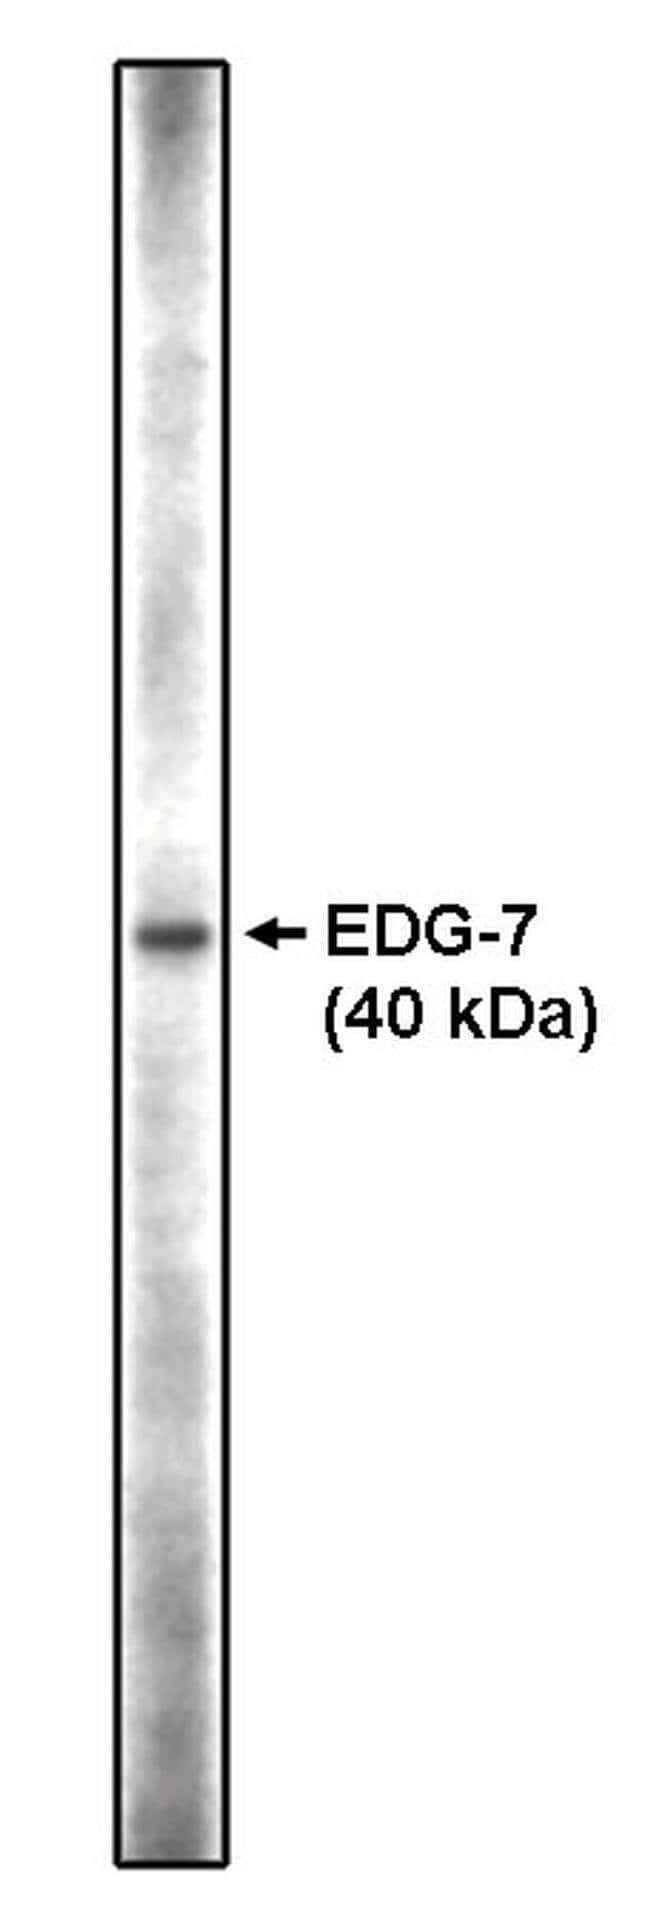 LPAR3 Rabbit anti-Human, Polyclonal, Invitrogen™